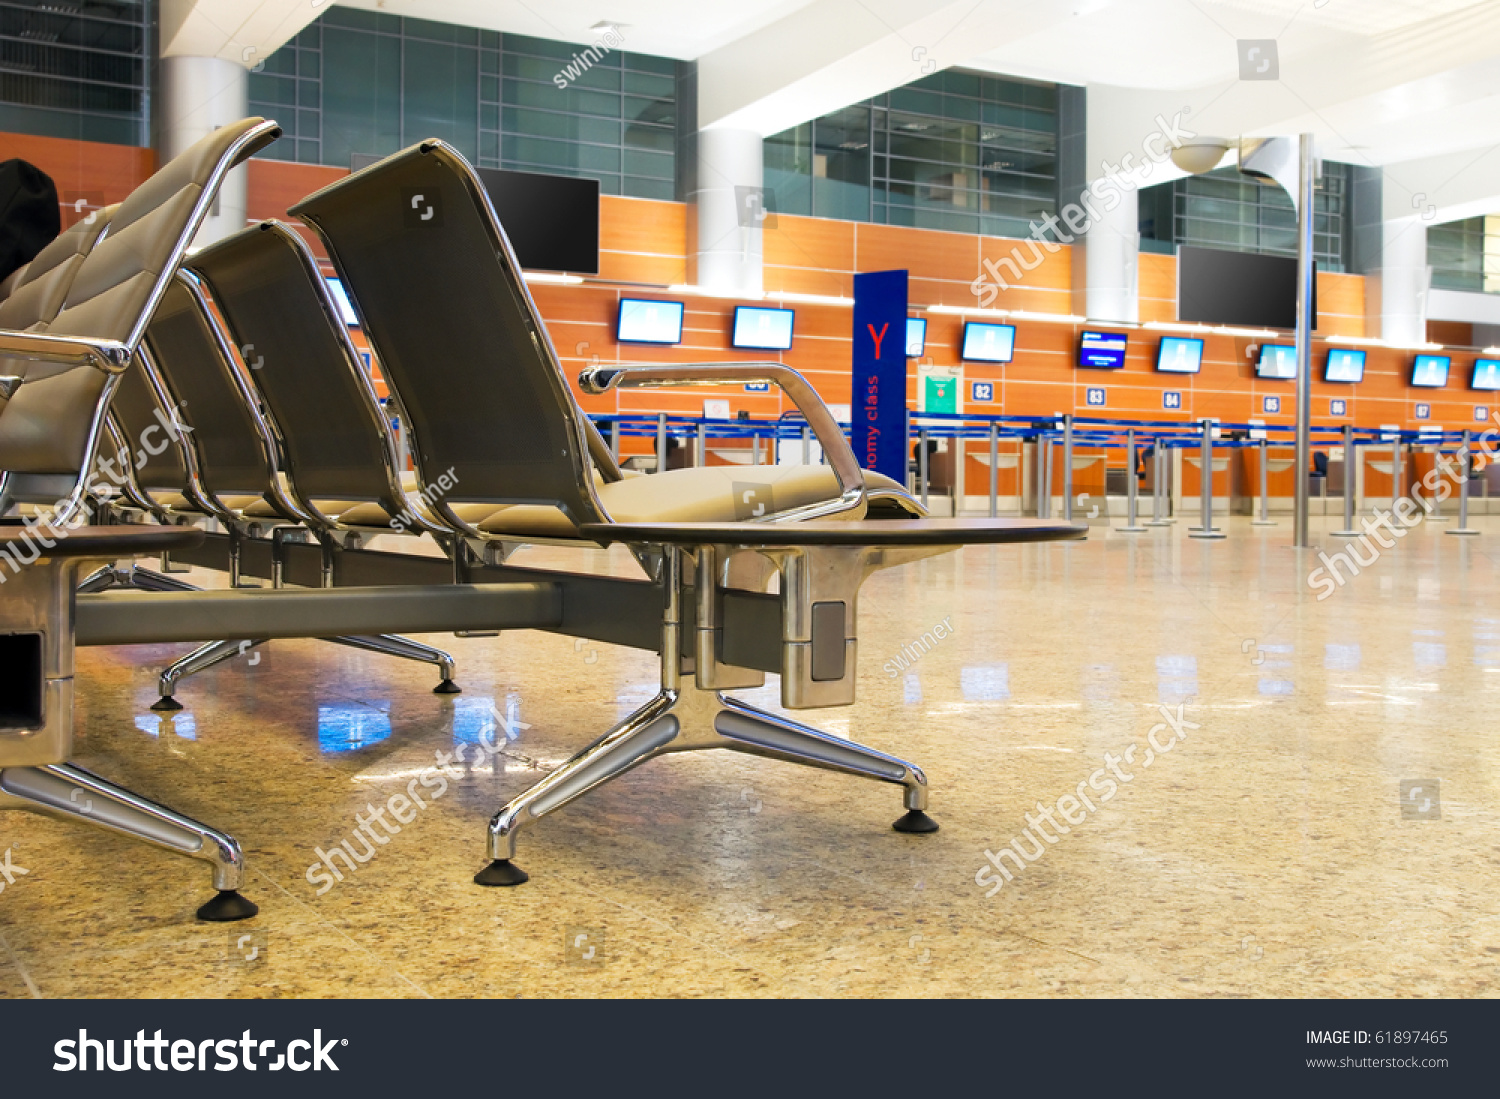 Modern architecture airport terminal stock photo edit now 61897465